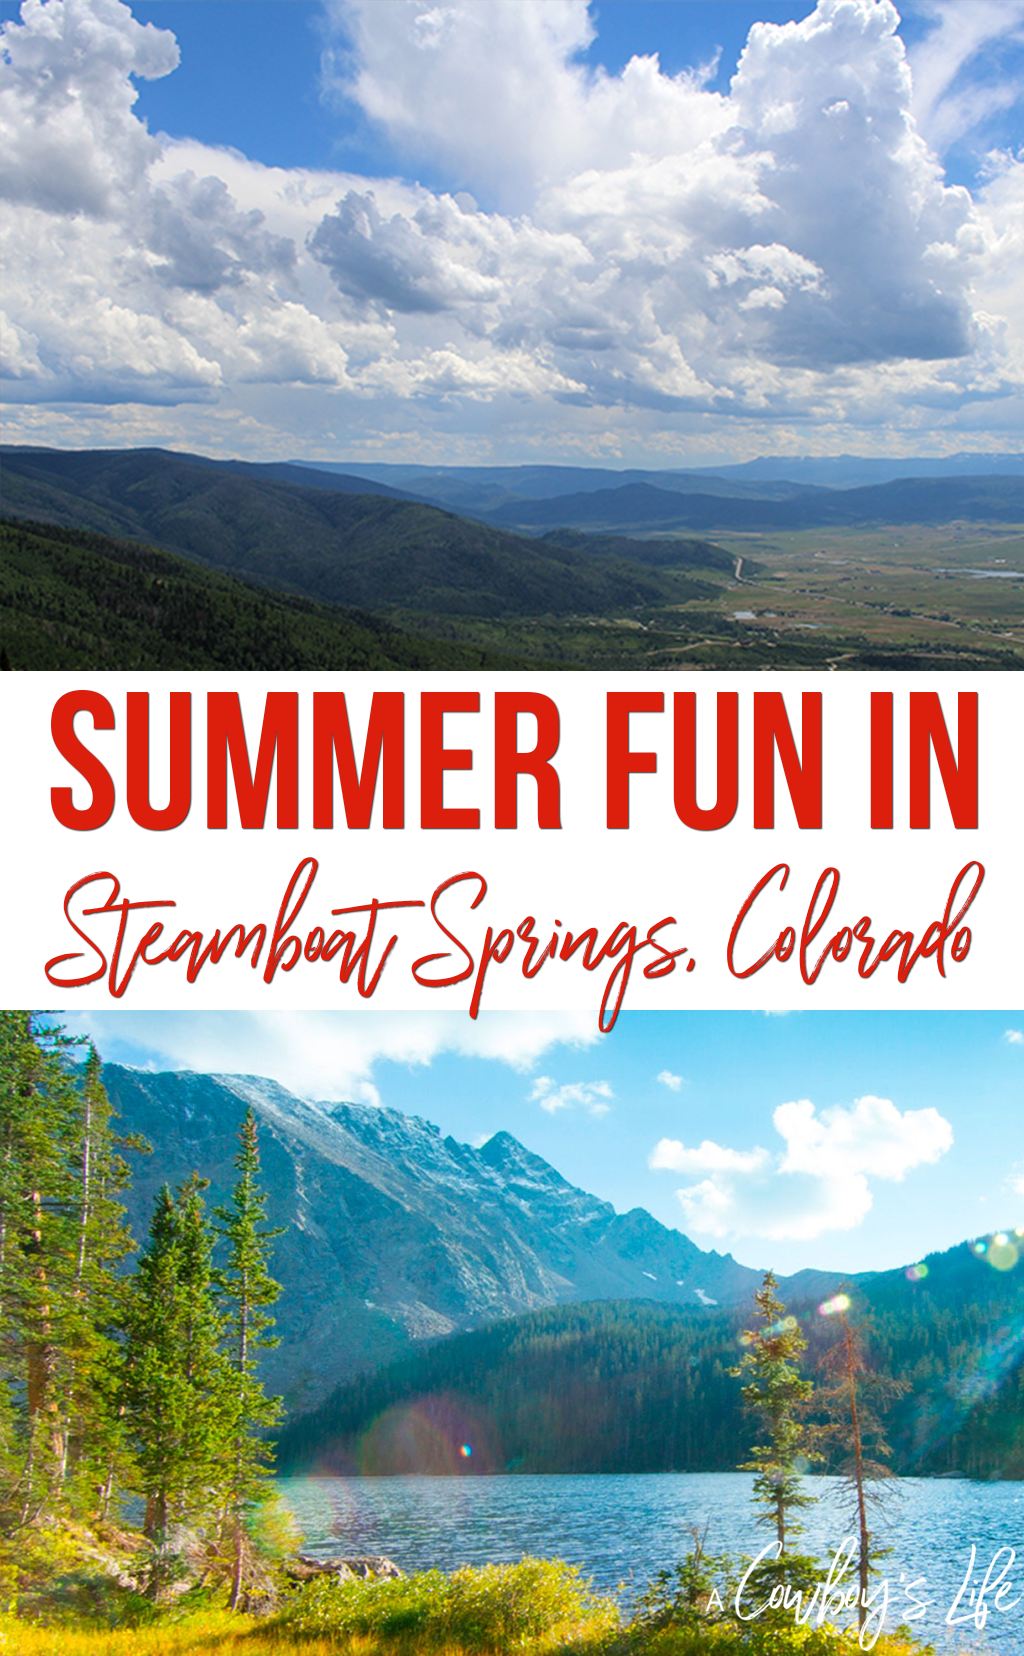 A guide to summer fun in Steamboat Springs, Colorado